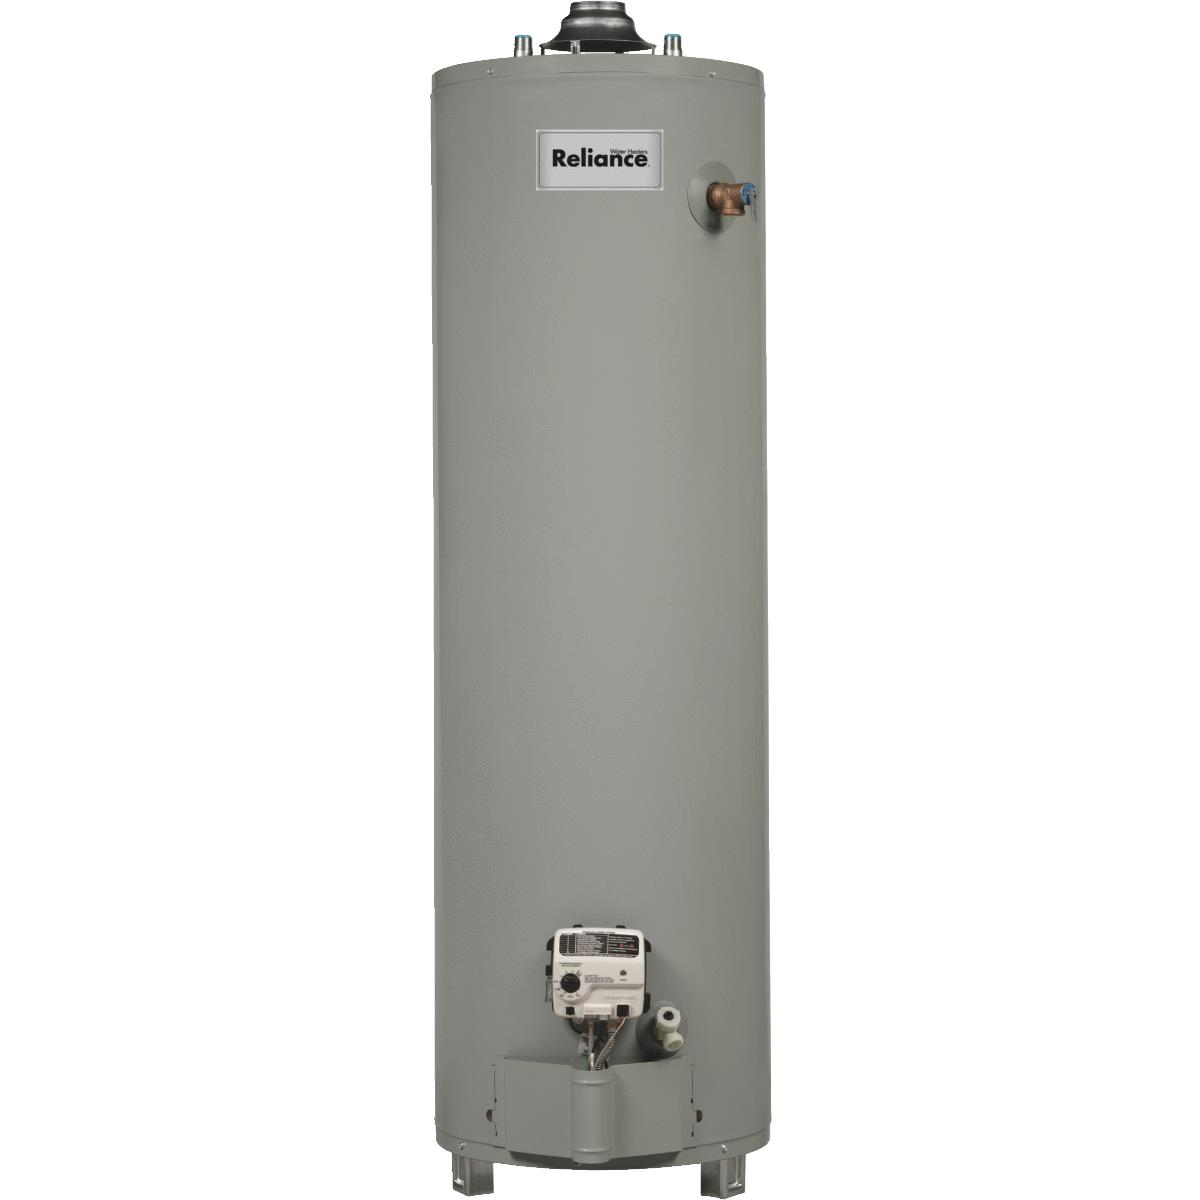 Reliance 40gal Ultra Low NOx Natural Gas Water Heater